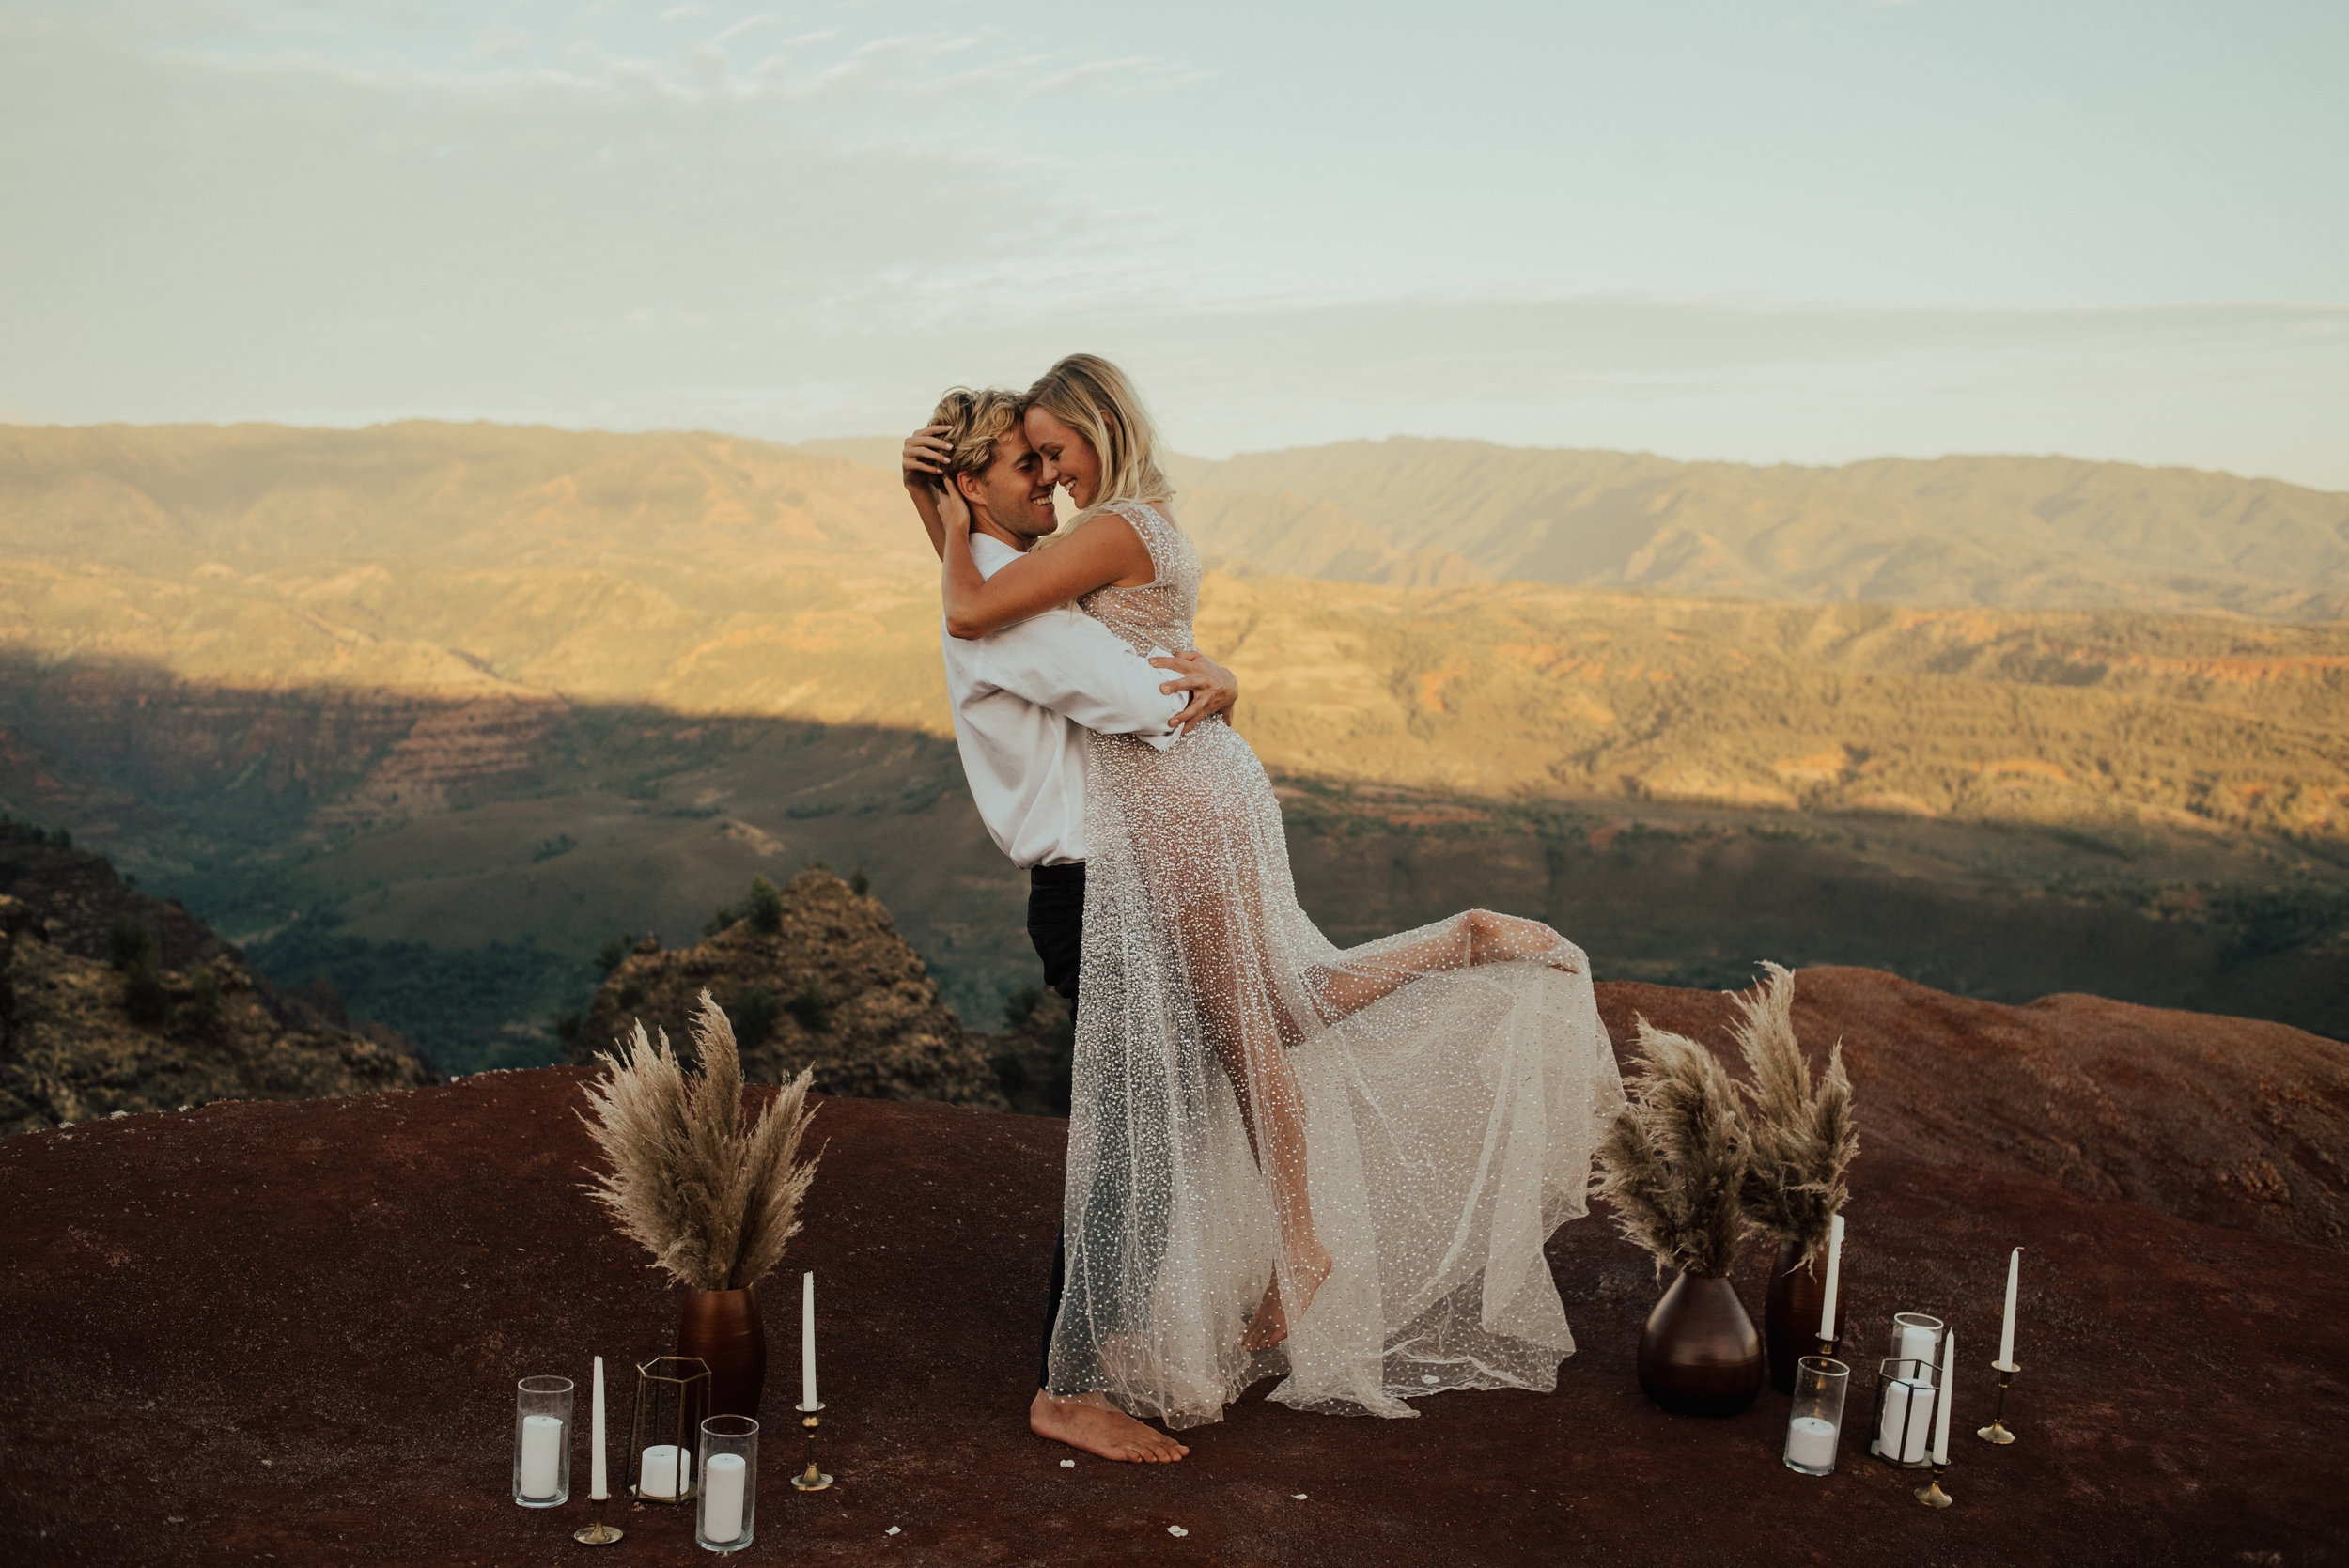 Waimea Canyon Elopement by SB Photographs01101001000111001110110110100100100001101001DSC_6643DSC_66430001101.jpg